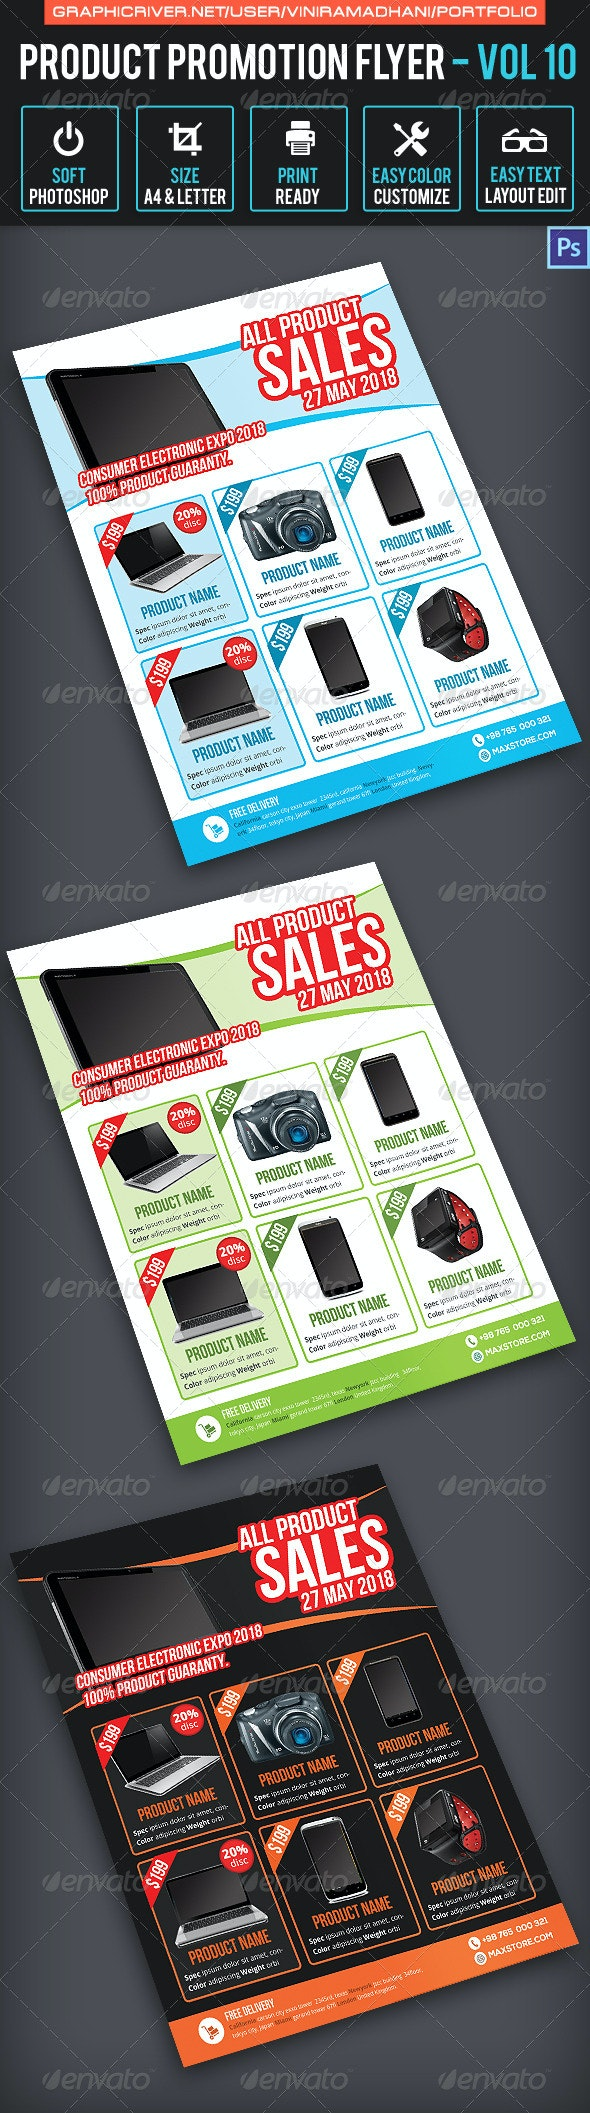 Product Promotion Flyer Volume 10 - Corporate Flyers